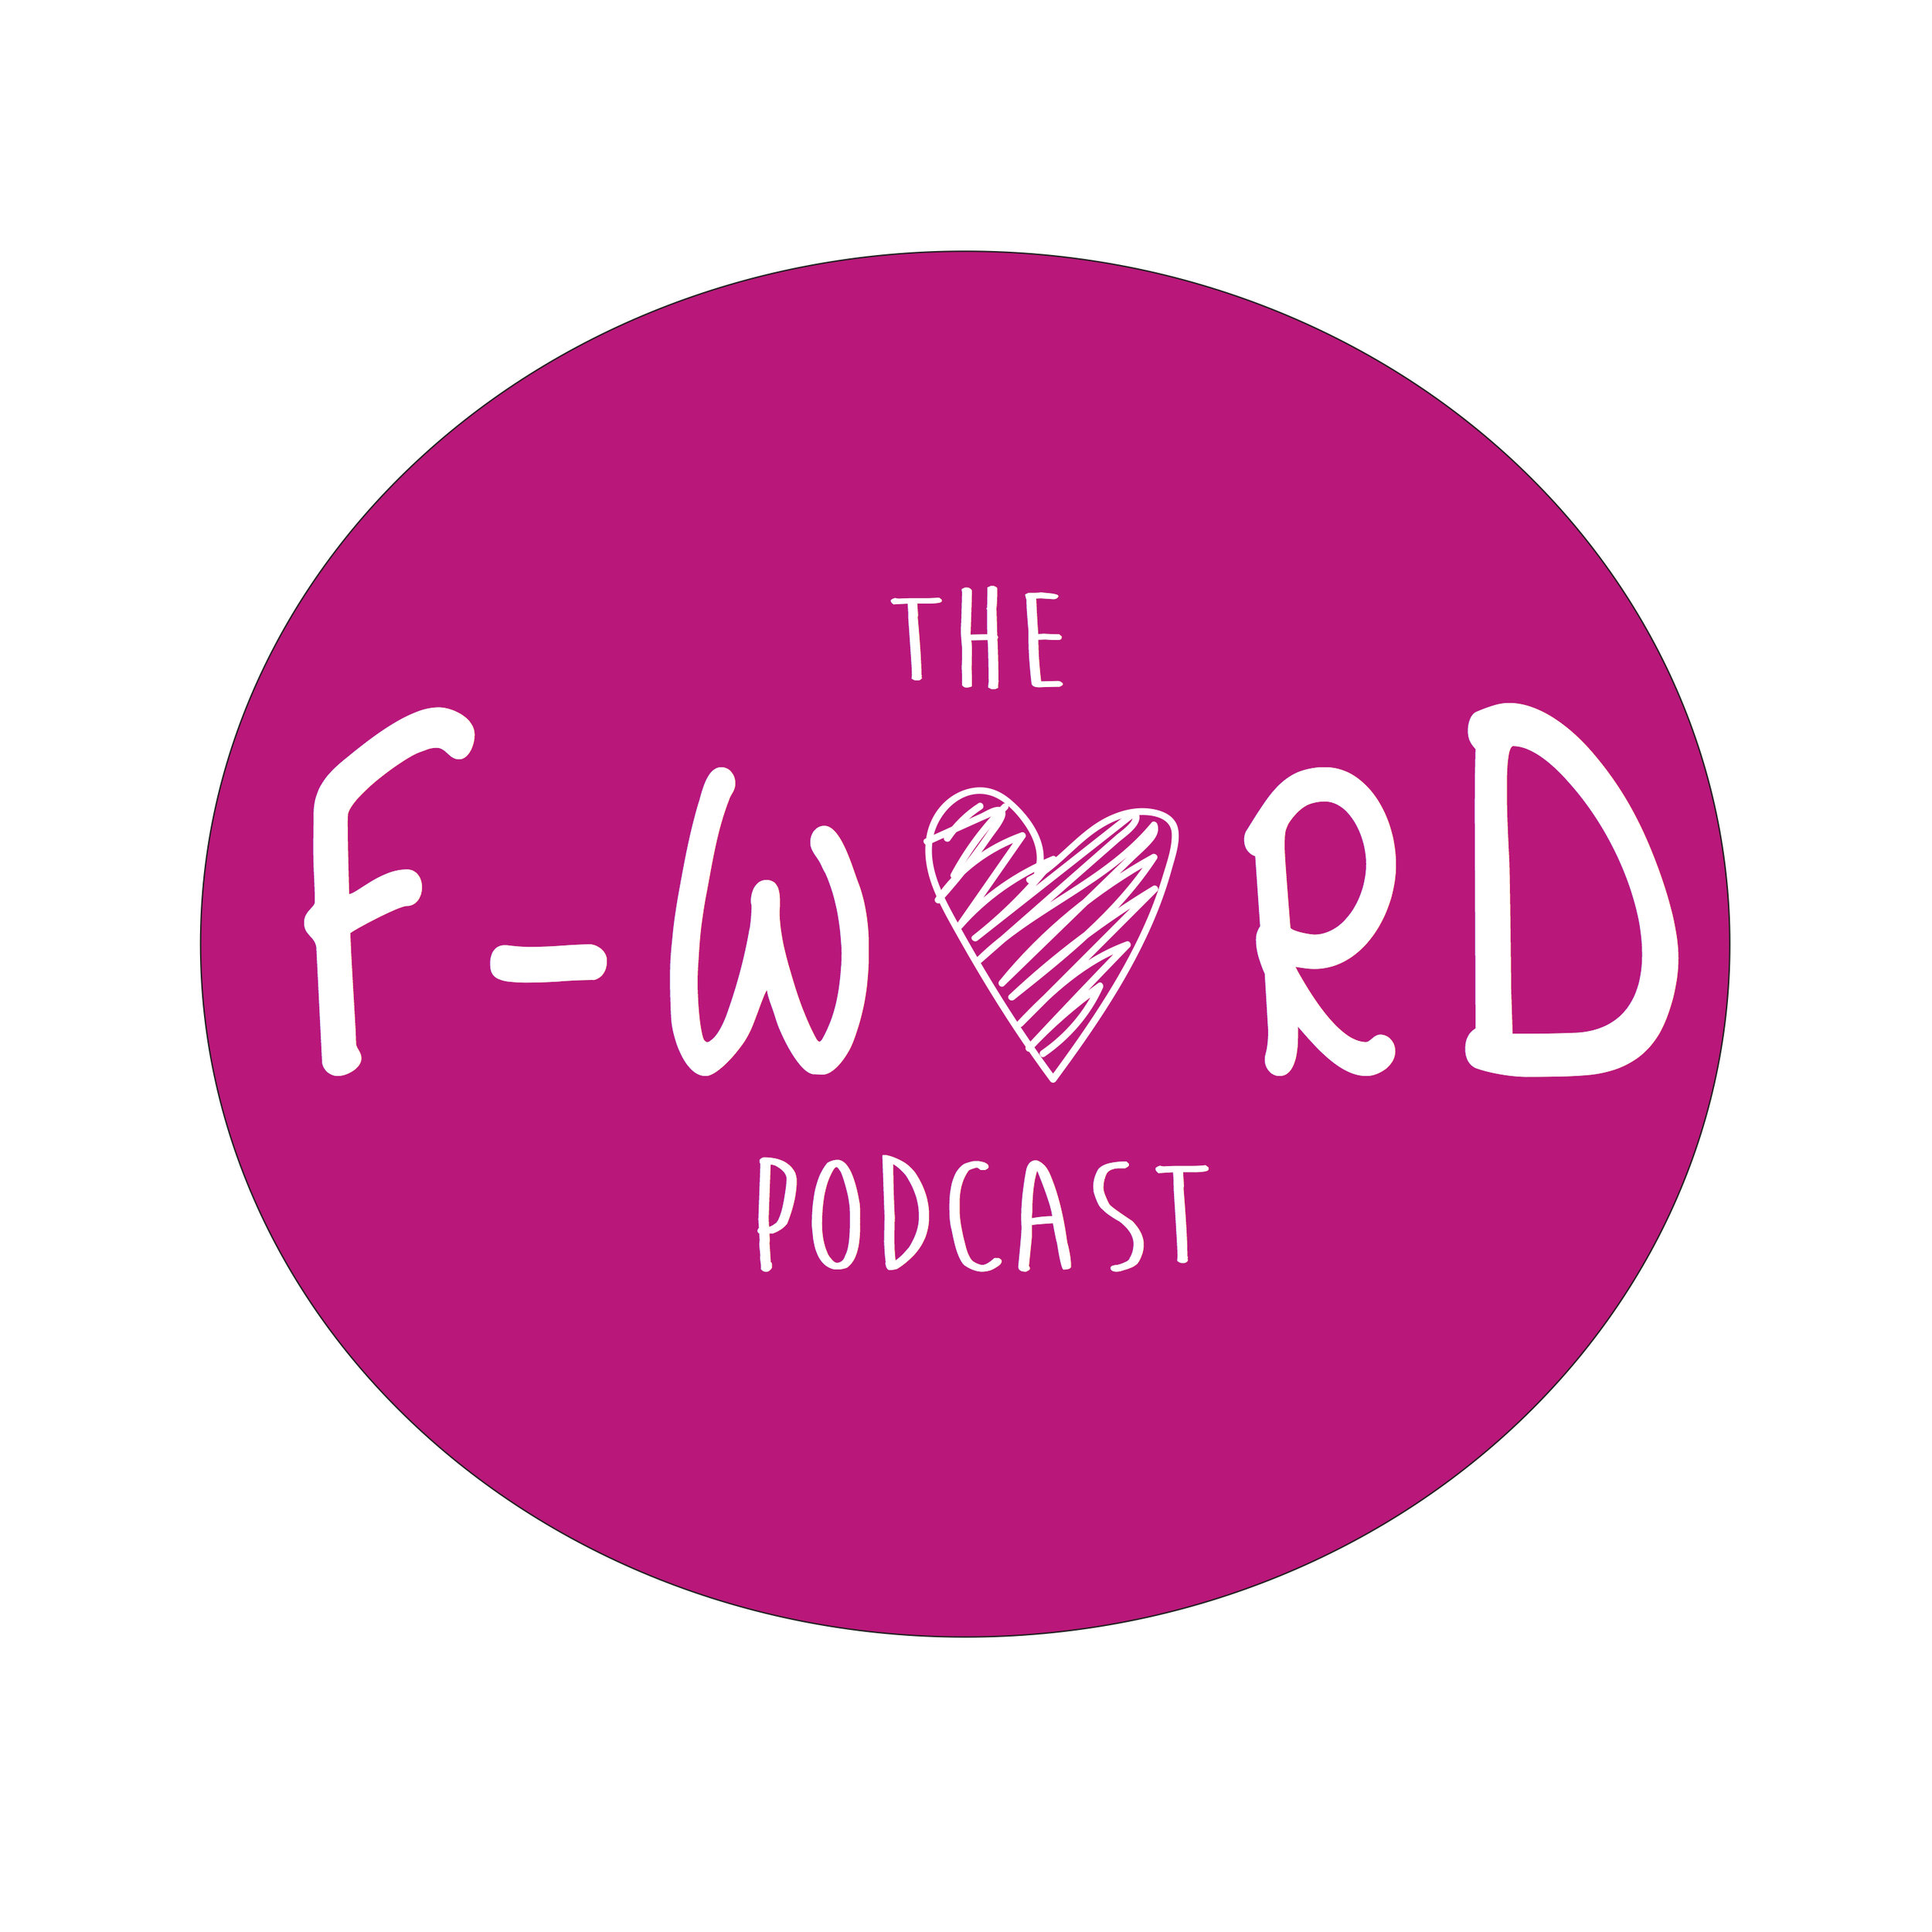 the f-word podcast.jpg